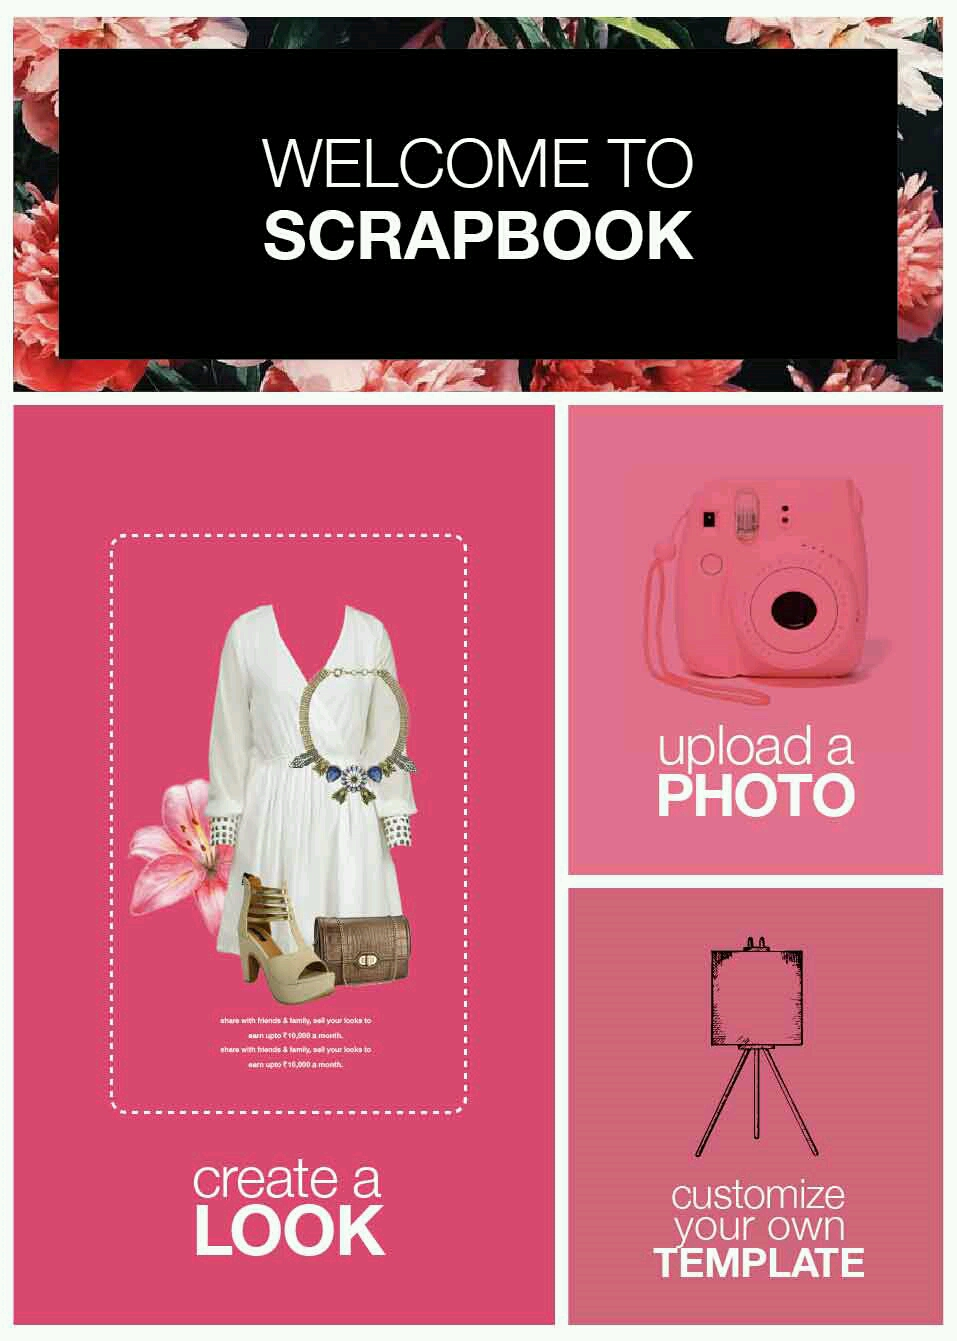 How to create scrapbook on limeroad - Likes